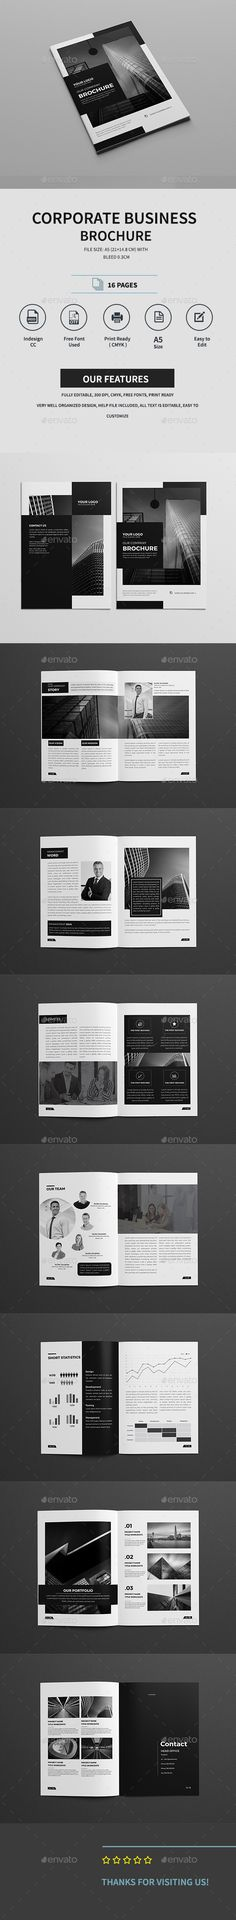 Corporate Business Brochure — InDesign INDD #free fonts #easy • Download ➝ https://graphicriver.net/item/corporate-business-brochure/19202194?ref=pxcr